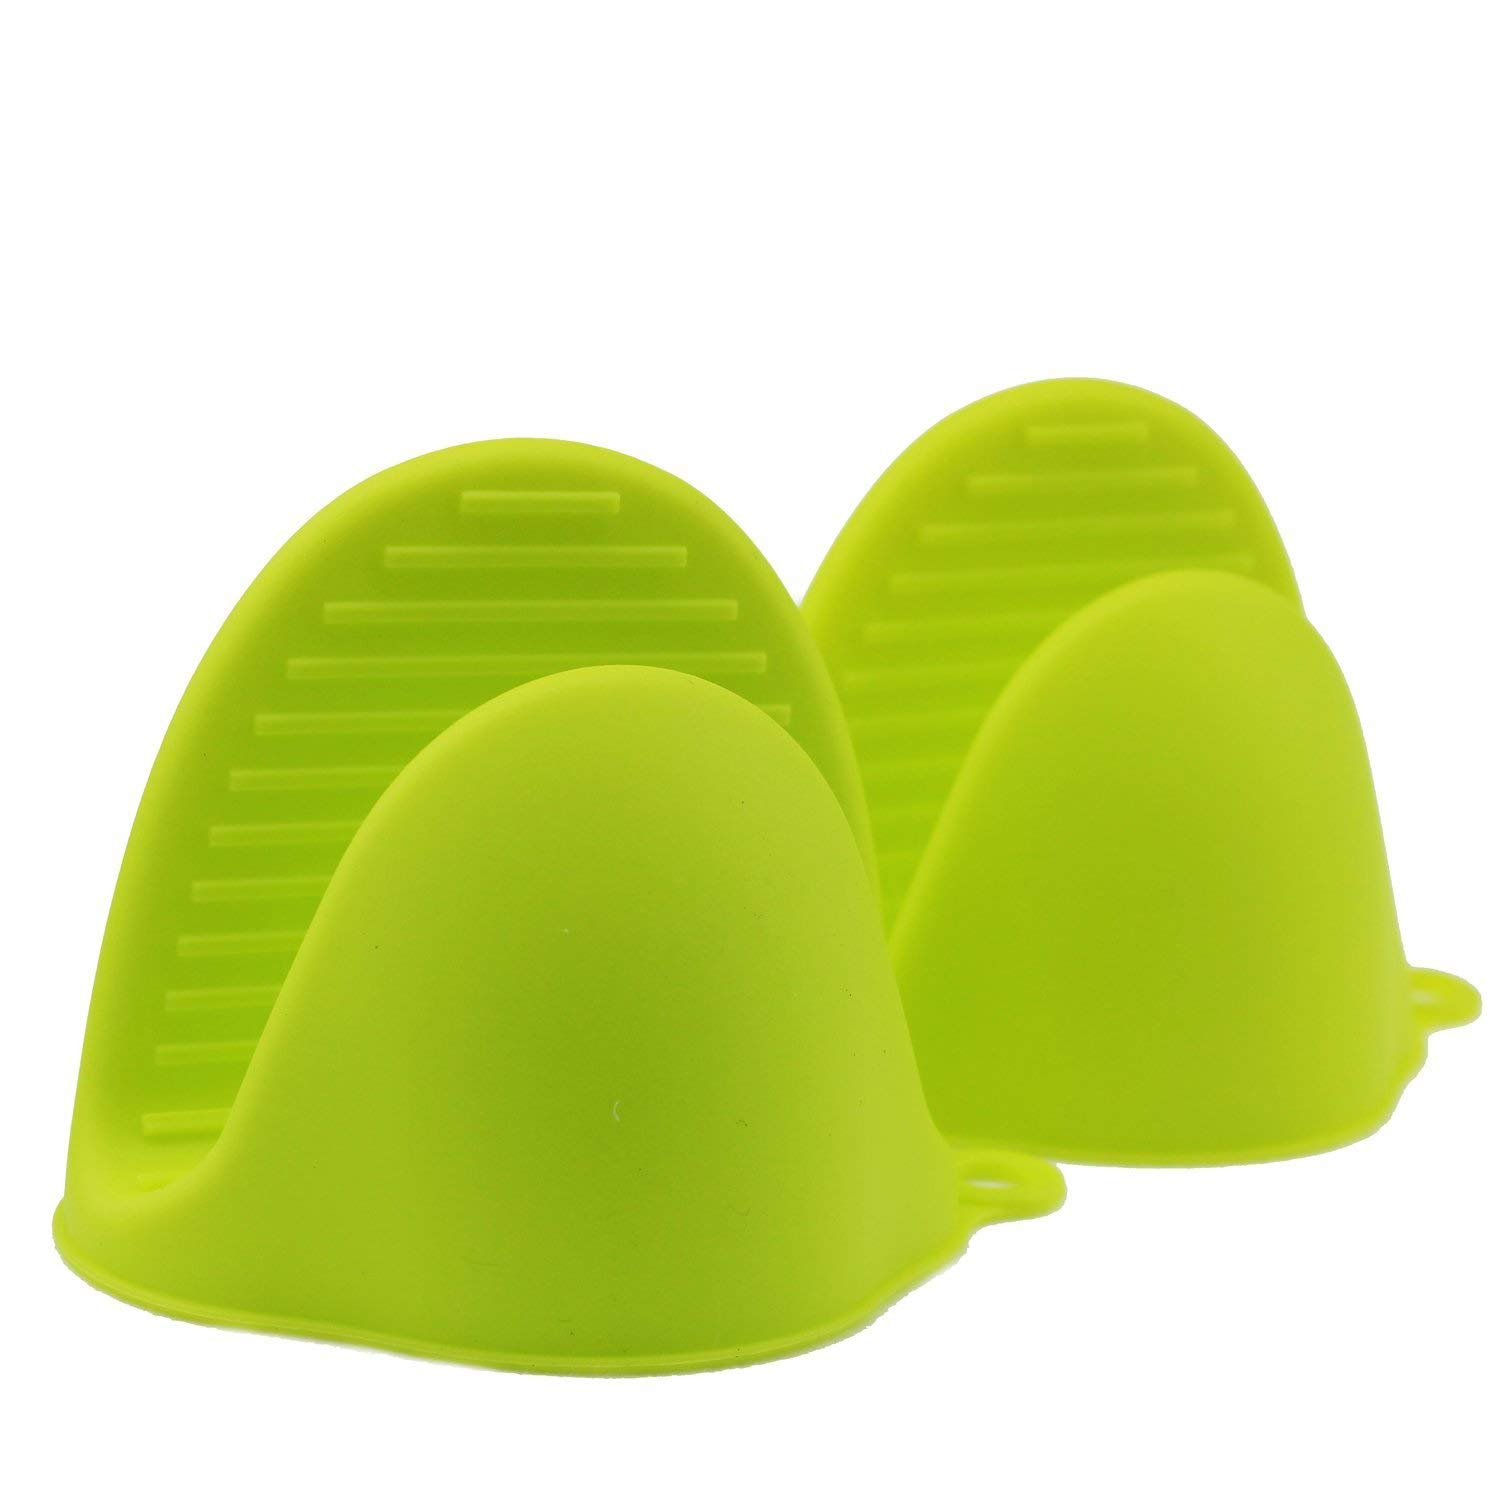 Deway (Set of 2) Silicone Heat Resistant Cooking Pinch Mitts, Mini Oven Mitts Gloves, Cooking Pinch Grips, Pot Holder and Potholder for Kitchen, Green